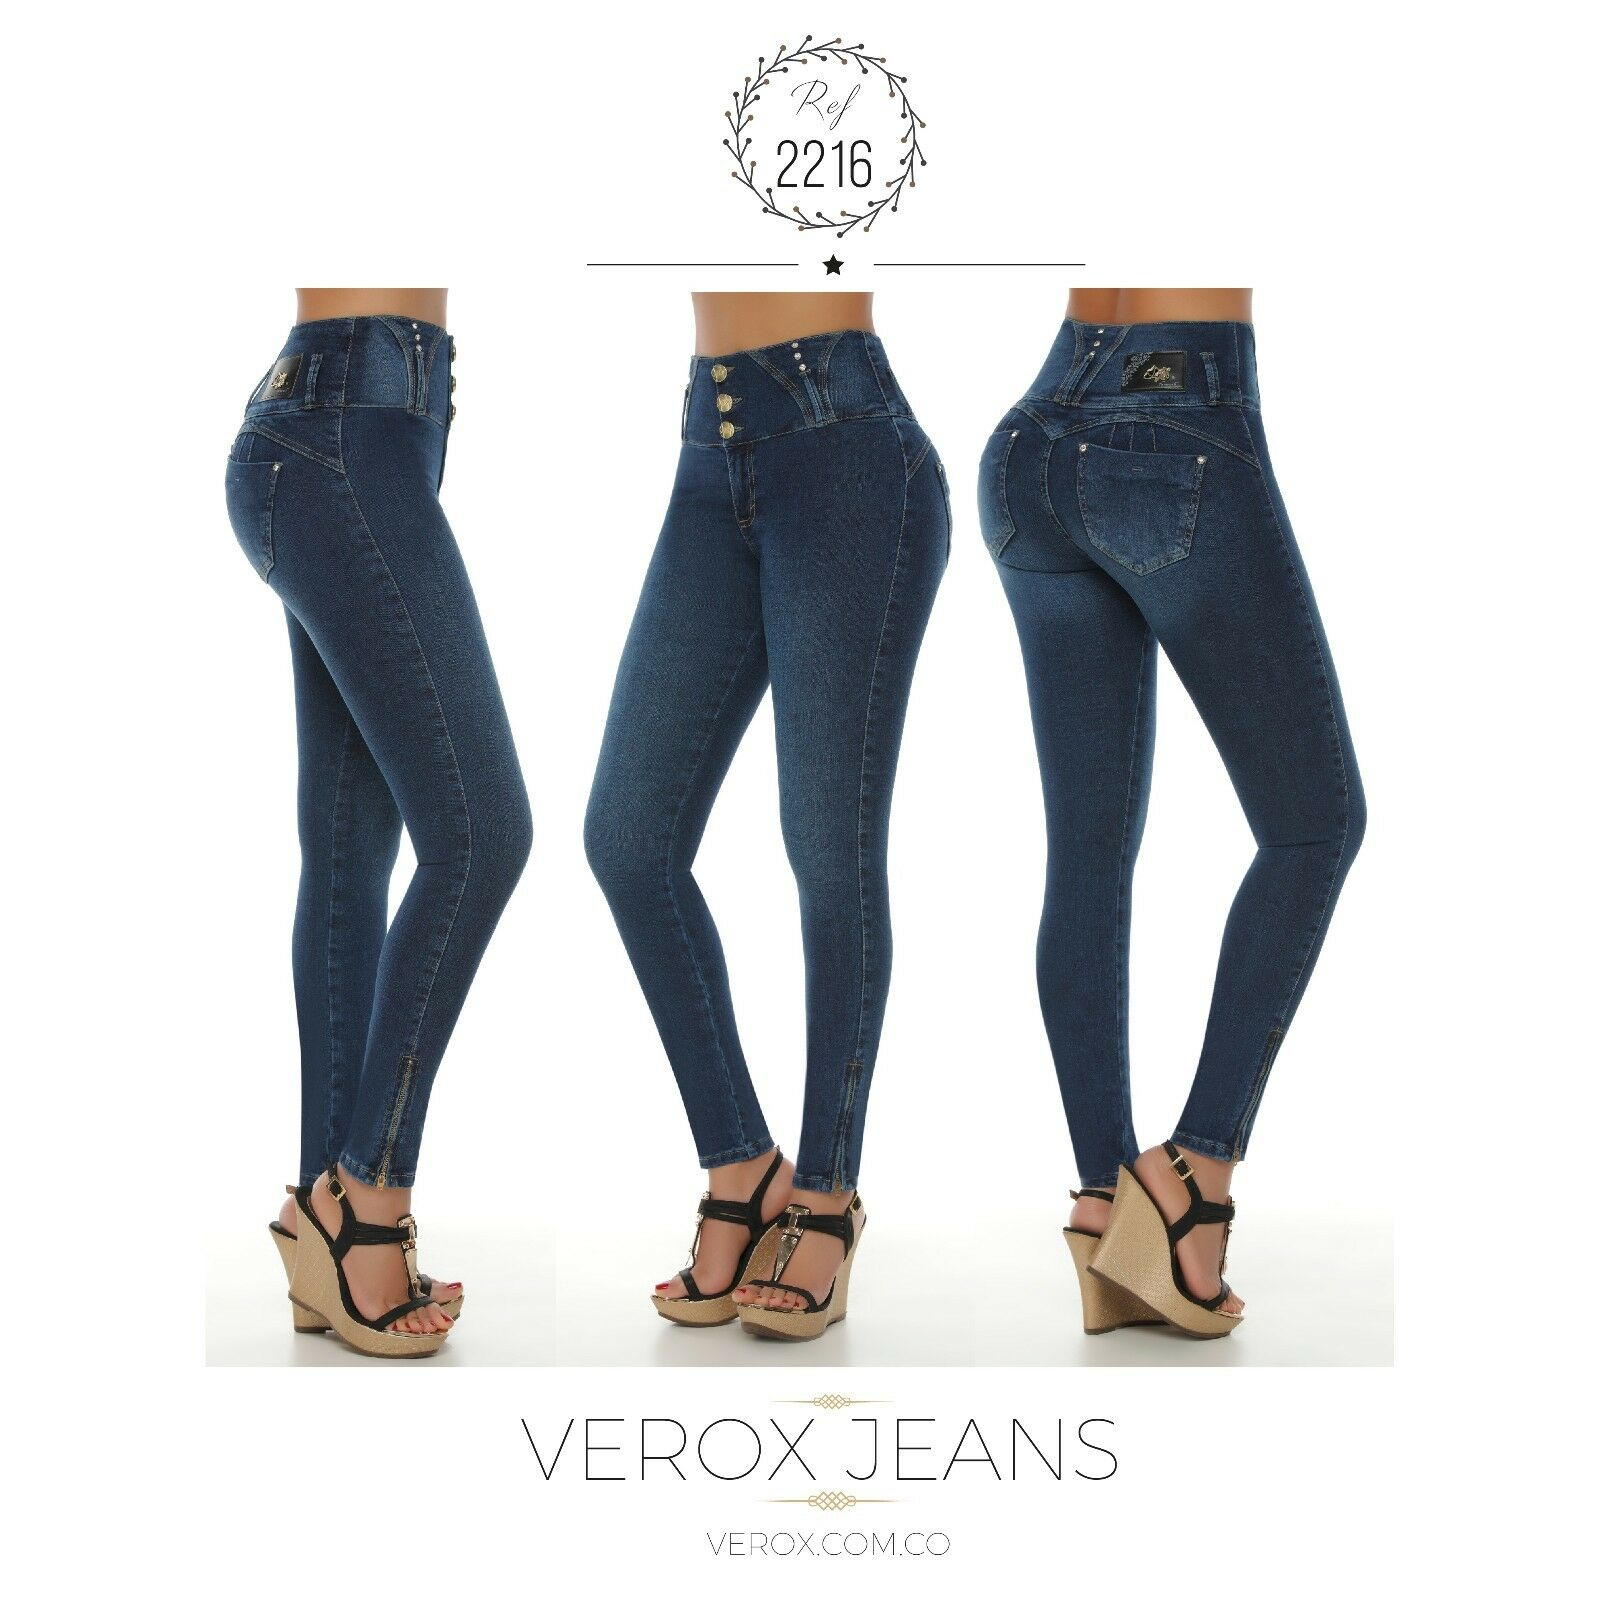 Verox Jeans colombianos butt lifter fajas colombianas jeans levanta cola 2216